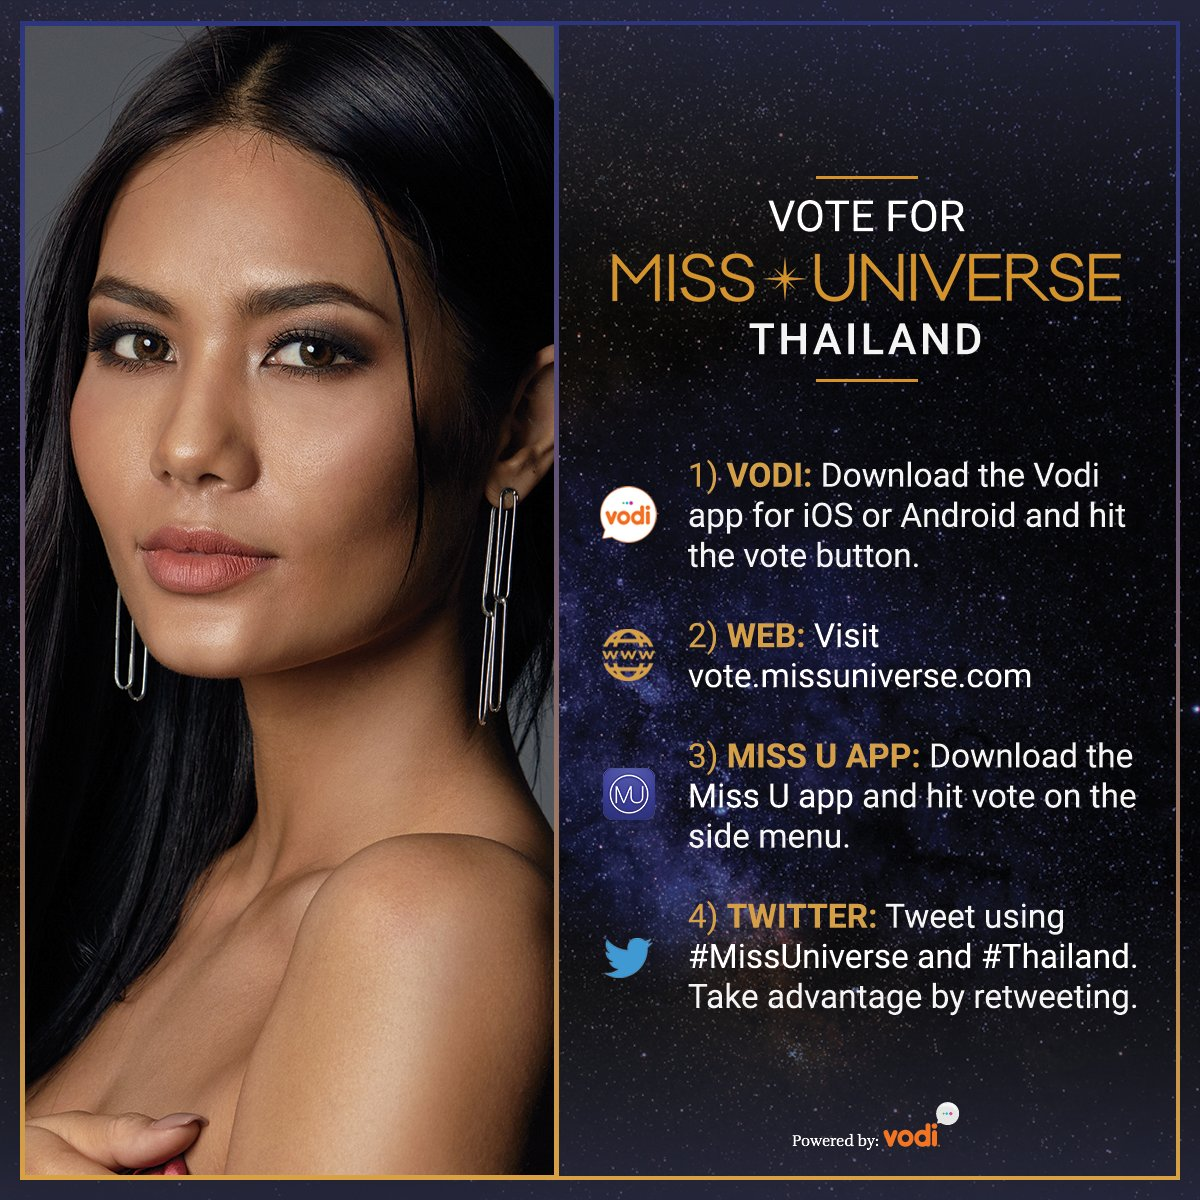 Voting for #MissUniverse is officially OPEN. RT to vote for Miss Universe #Thailand   Watch her LIVE: Sunday Jan. 29 at 7/6 on @FOXTV.